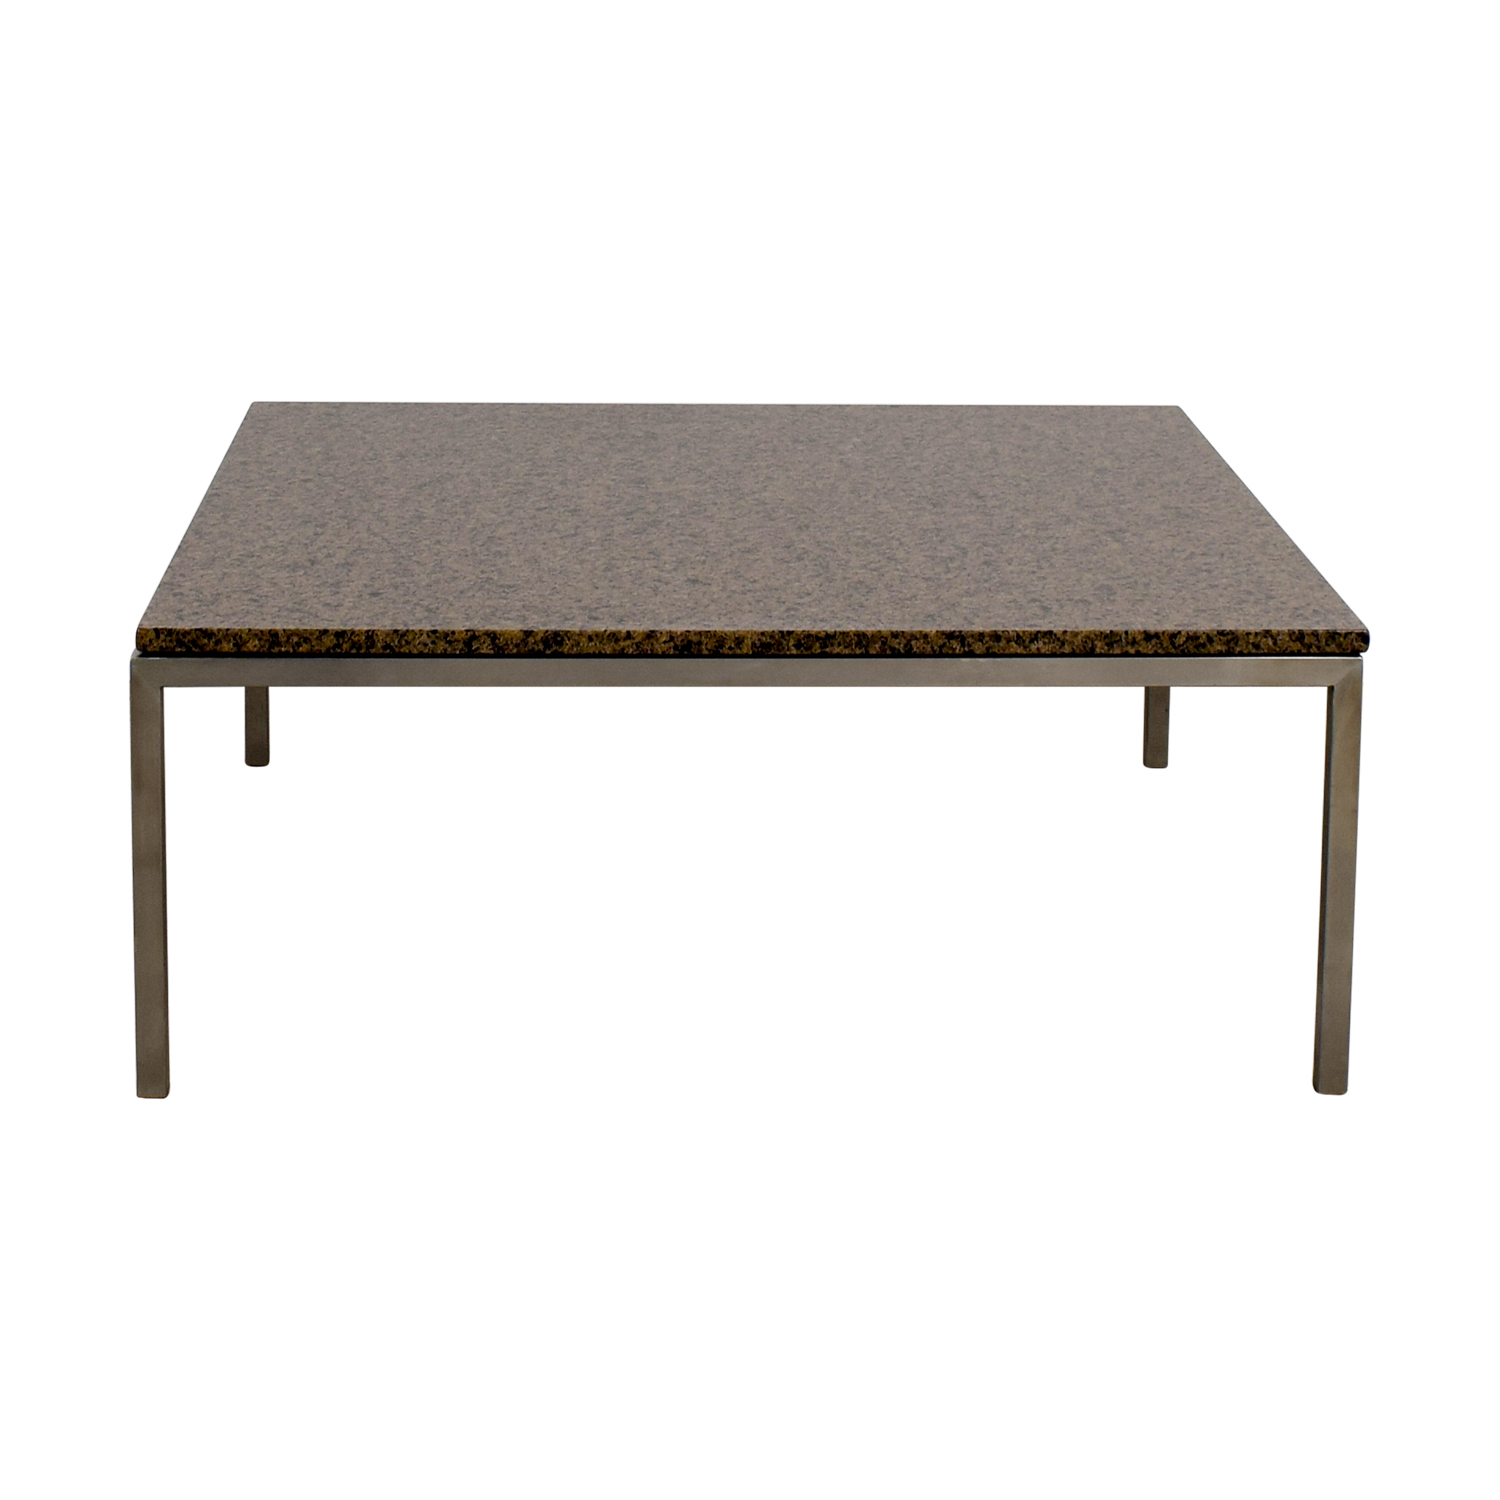 Kubo Square Coffee Table: Coffee Tables: Used Coffee Tables For Sale